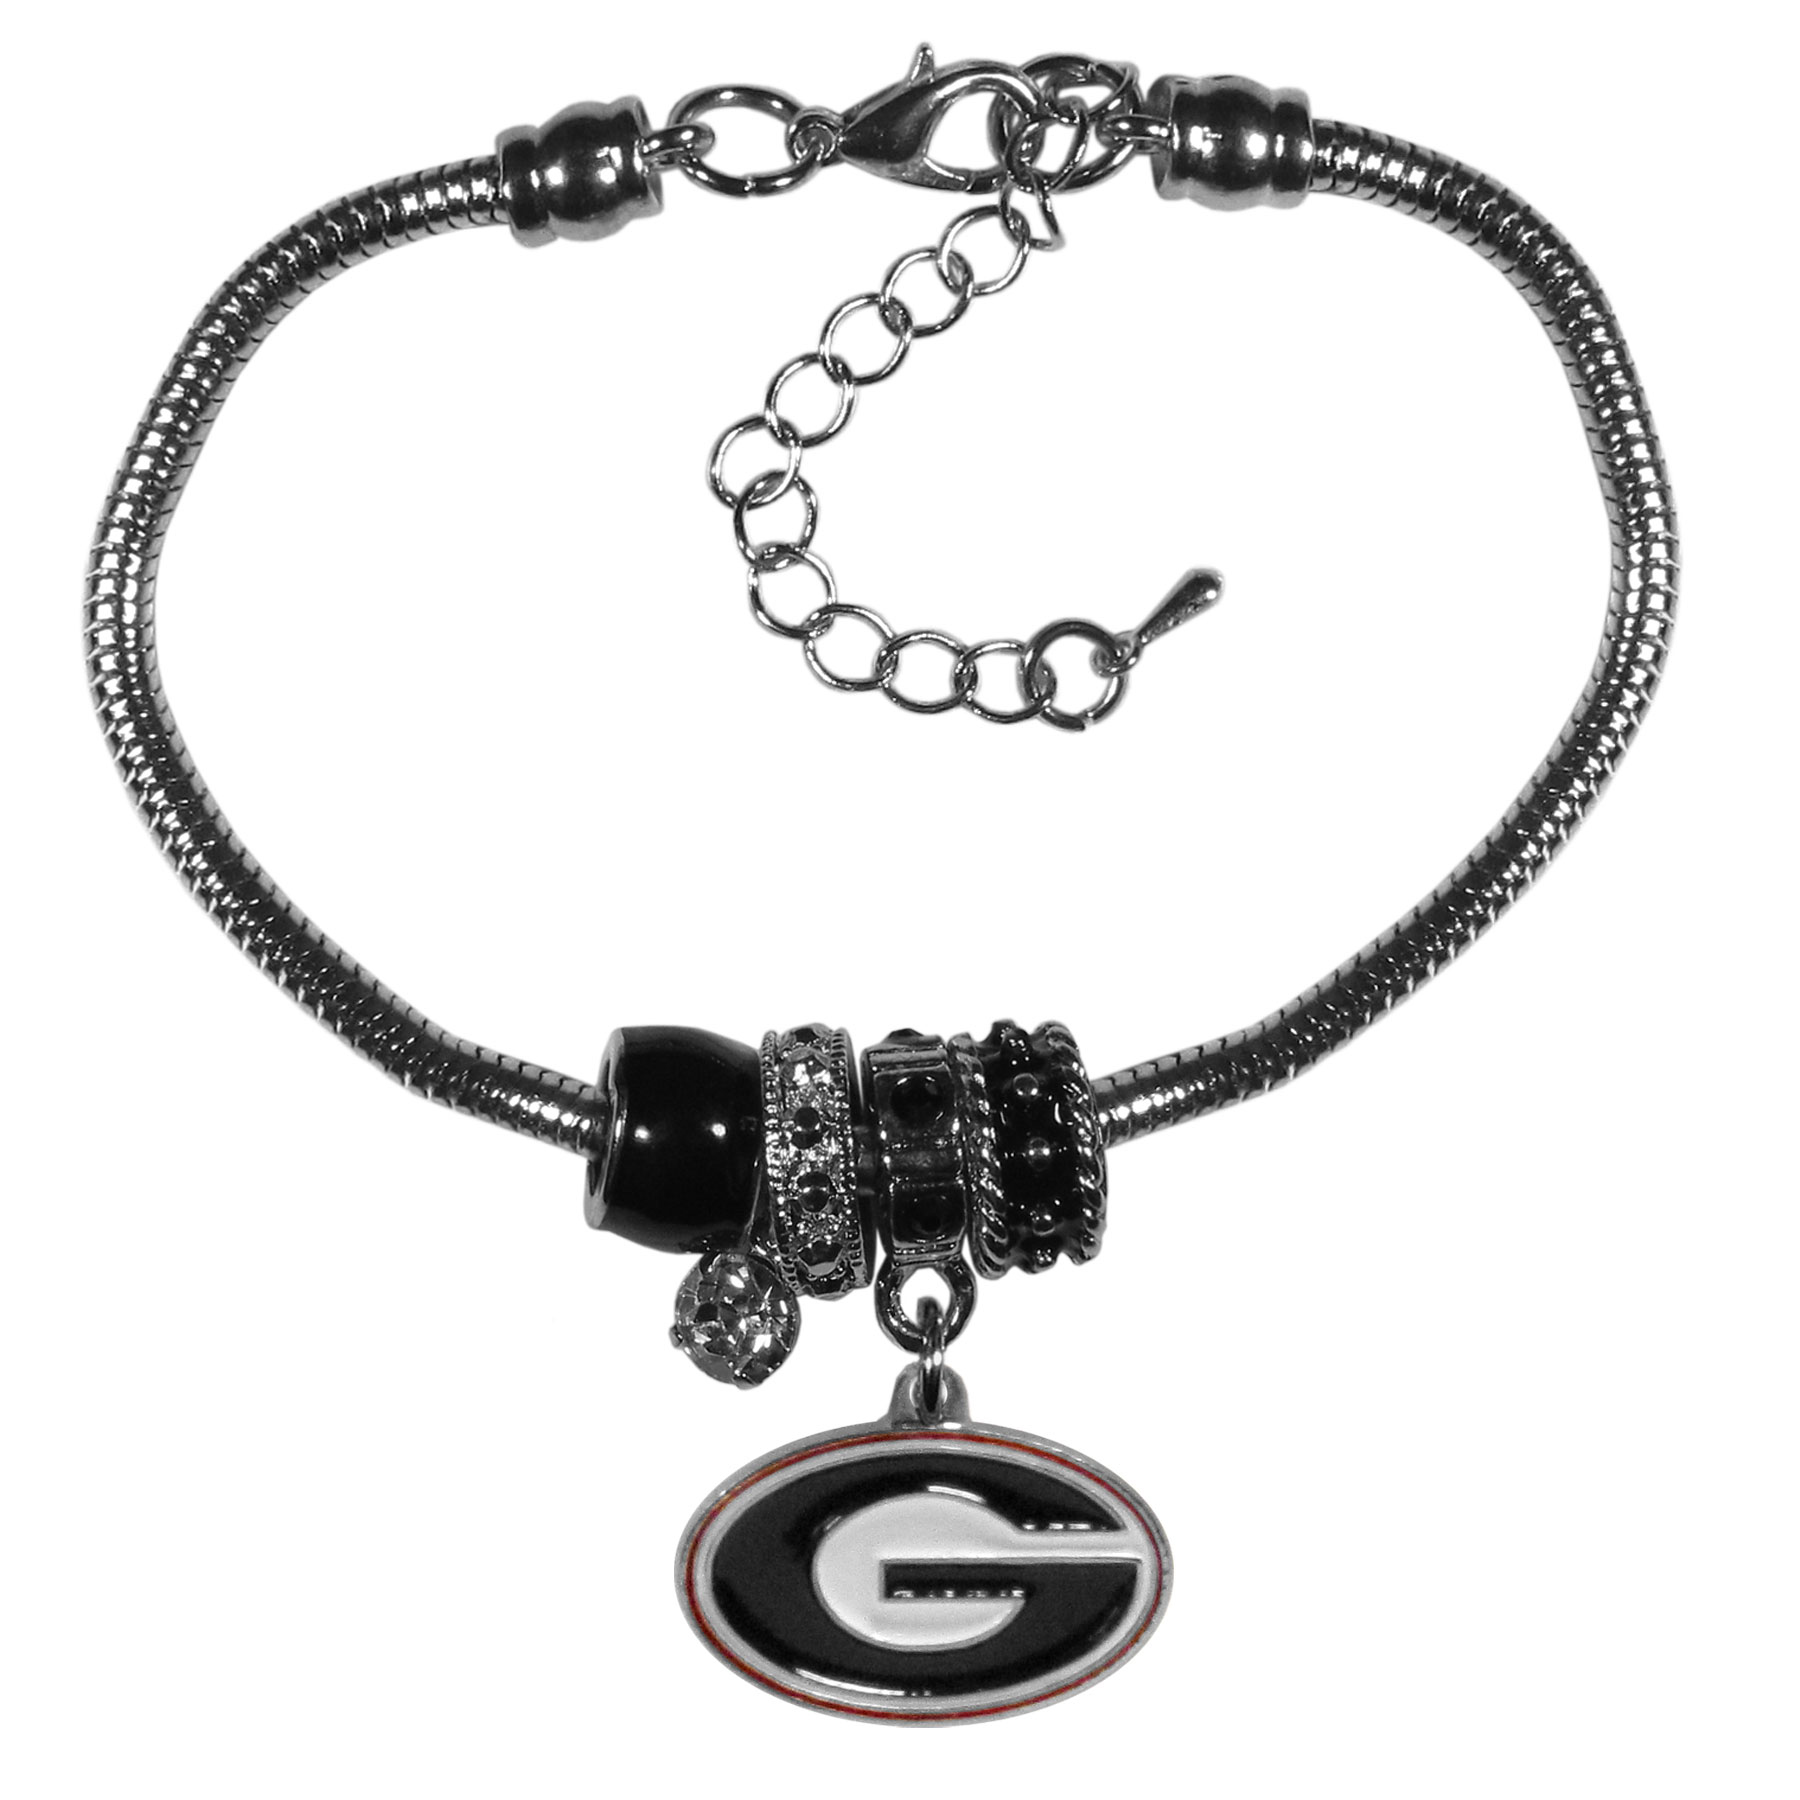 Georgia Bulldogs Euro Bead Bracelet - We have combined the wildly popular Euro style beads with your favorite team to create our  Georgia Bulldogs bead bracelet. The 7.5 inch snake chain with 2 inch extender features 4 Euro beads with enameled team colors and rhinestone accents with a high polish, nickel free charm and rhinestone charm. Perfect way to show off your team pride.